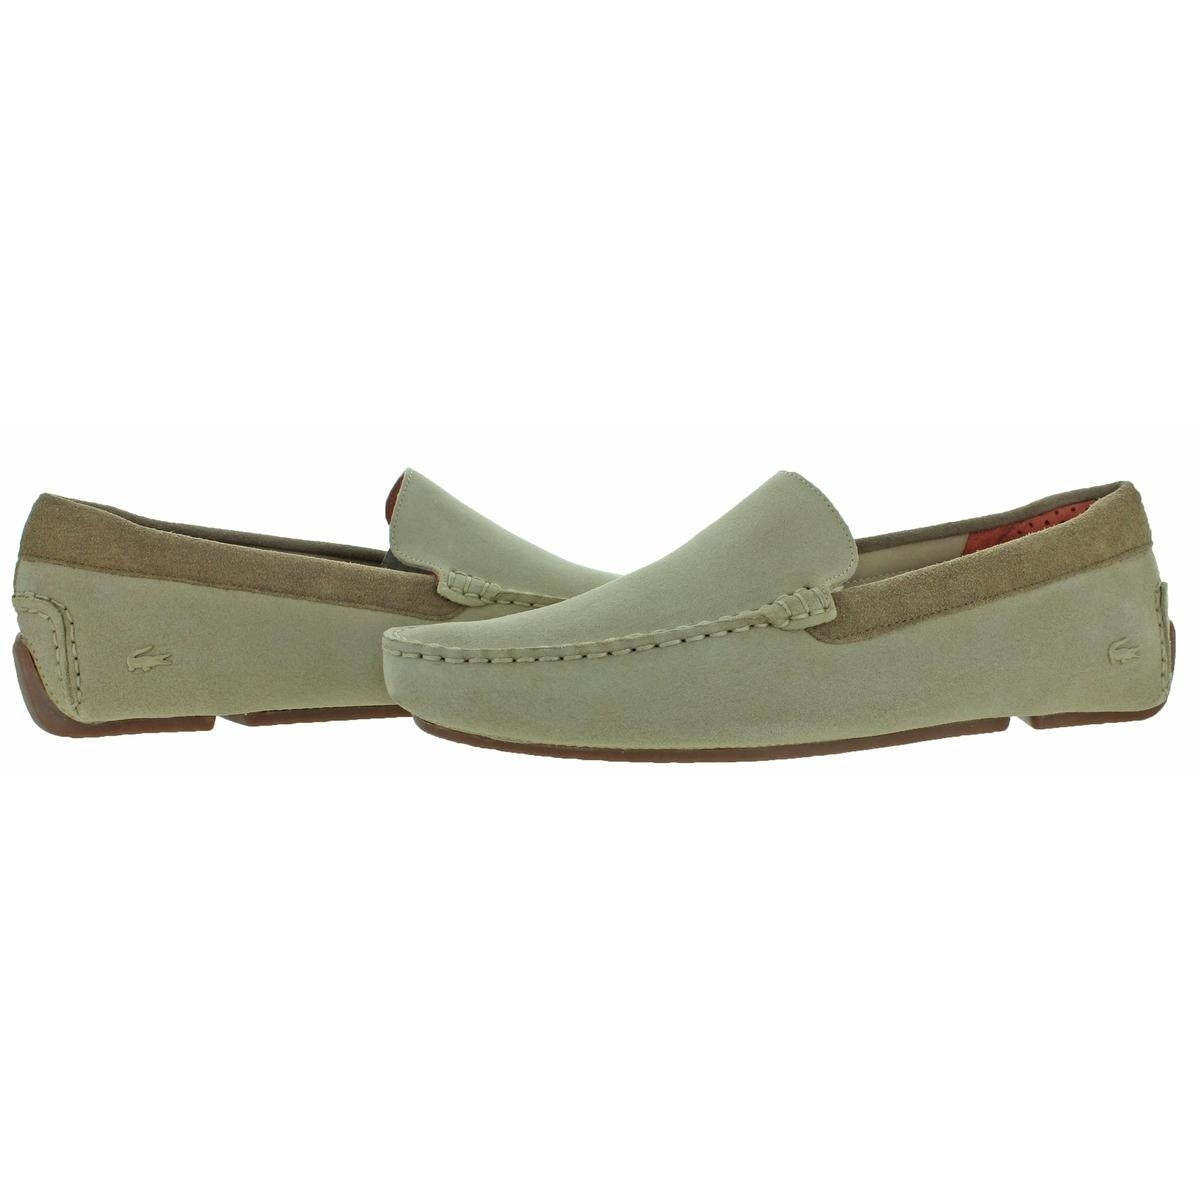 e822e4b39166 Shop Lacoste Mens Piloter Driving Moccasins Suede Loafer - Free Shipping  Today - Overstock - 24020191